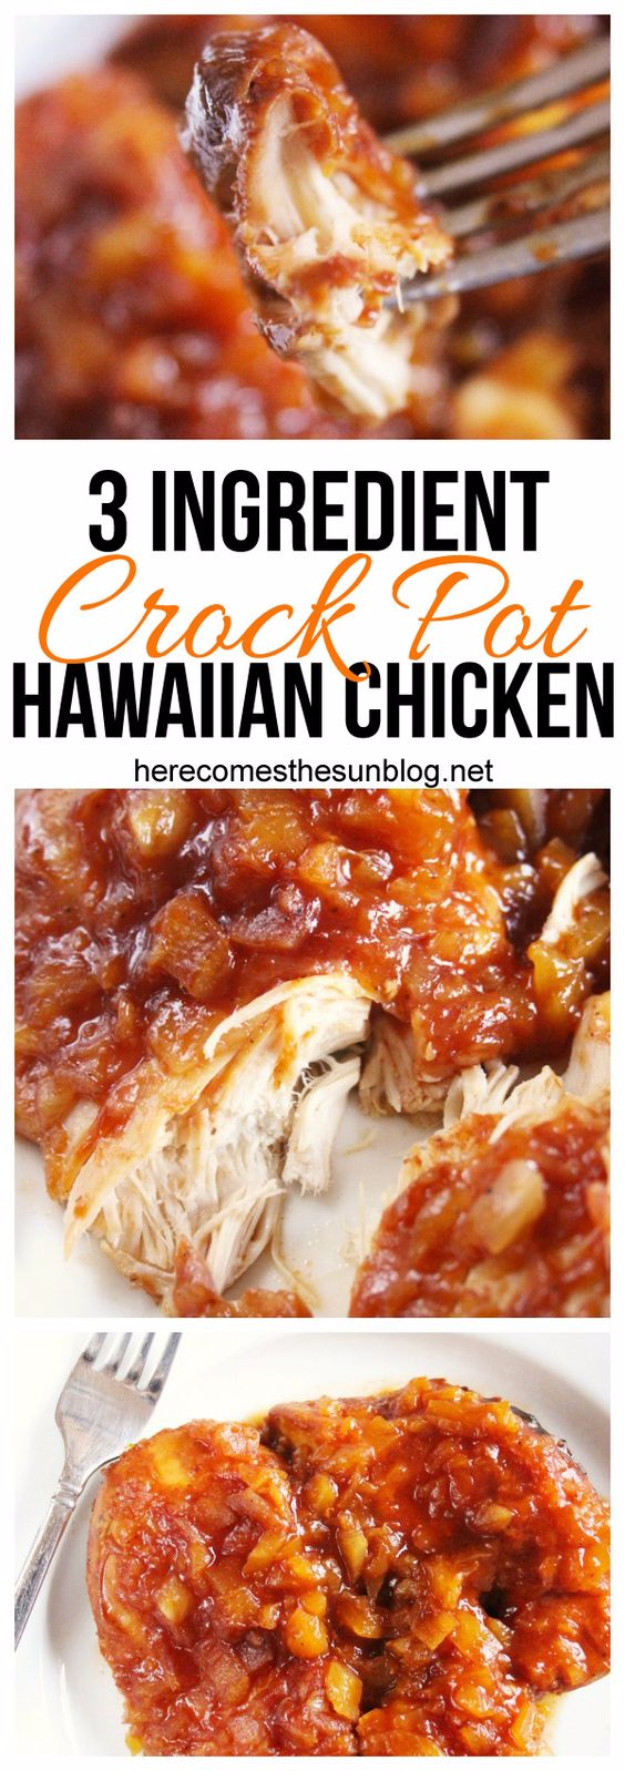 33 Easy Three Ingredient Recipes - 3 Ingredient Crock Pot Hawaiian Chicken - Quick And Healthy 3 Ingredients Recipe Ideas for Breakfast, Lunch, Dinner, Appetizers, Snacks and Desserts - Cookies, Chicken, Crockpot Ideas, Baking and Microwave Recipes and Tutorials #easyrecipes #quickrecipes